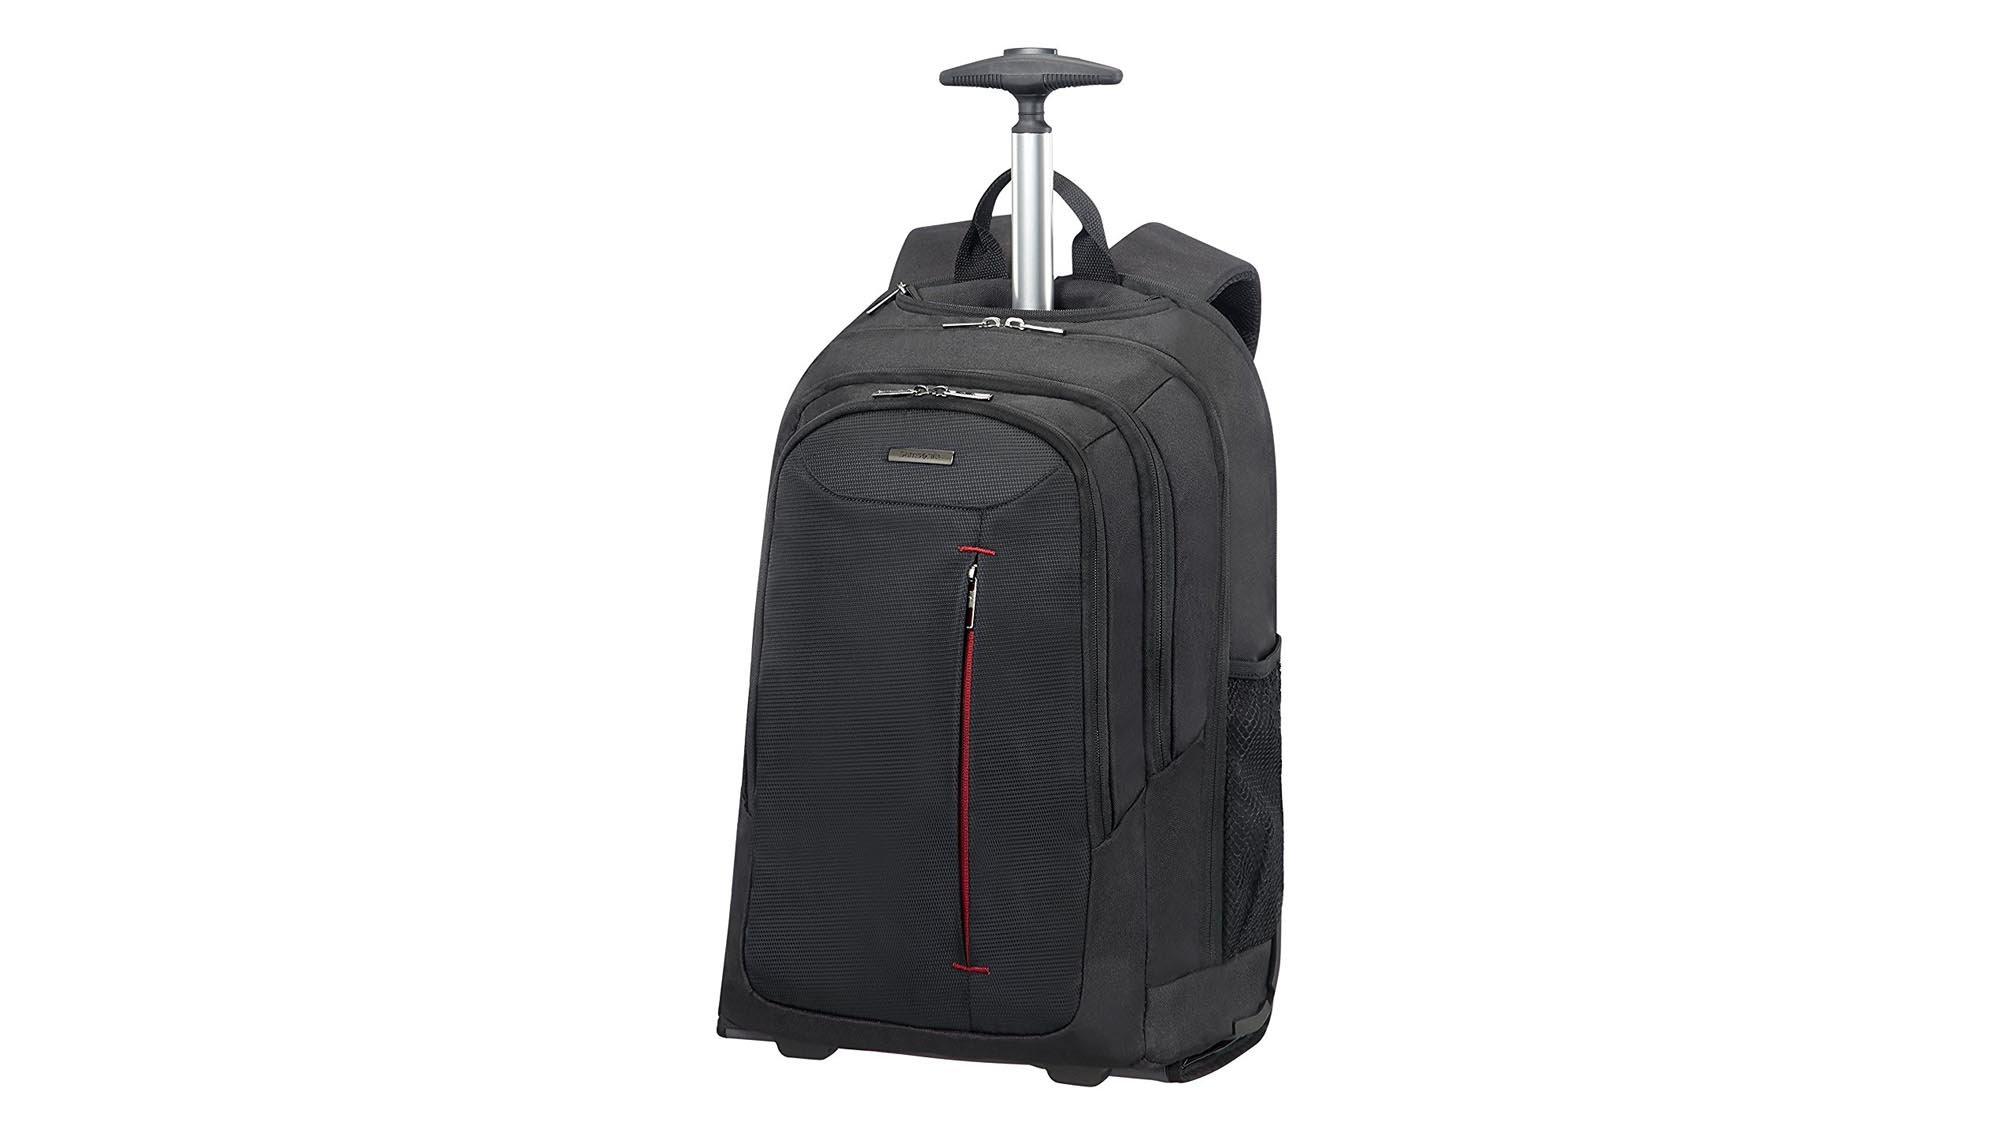 27619cf330b3 Samsonite s GuardIT line covers a range of bags and backpacks that mix  businesslike looks with rock-solid protection. This particular model is  your classic ...